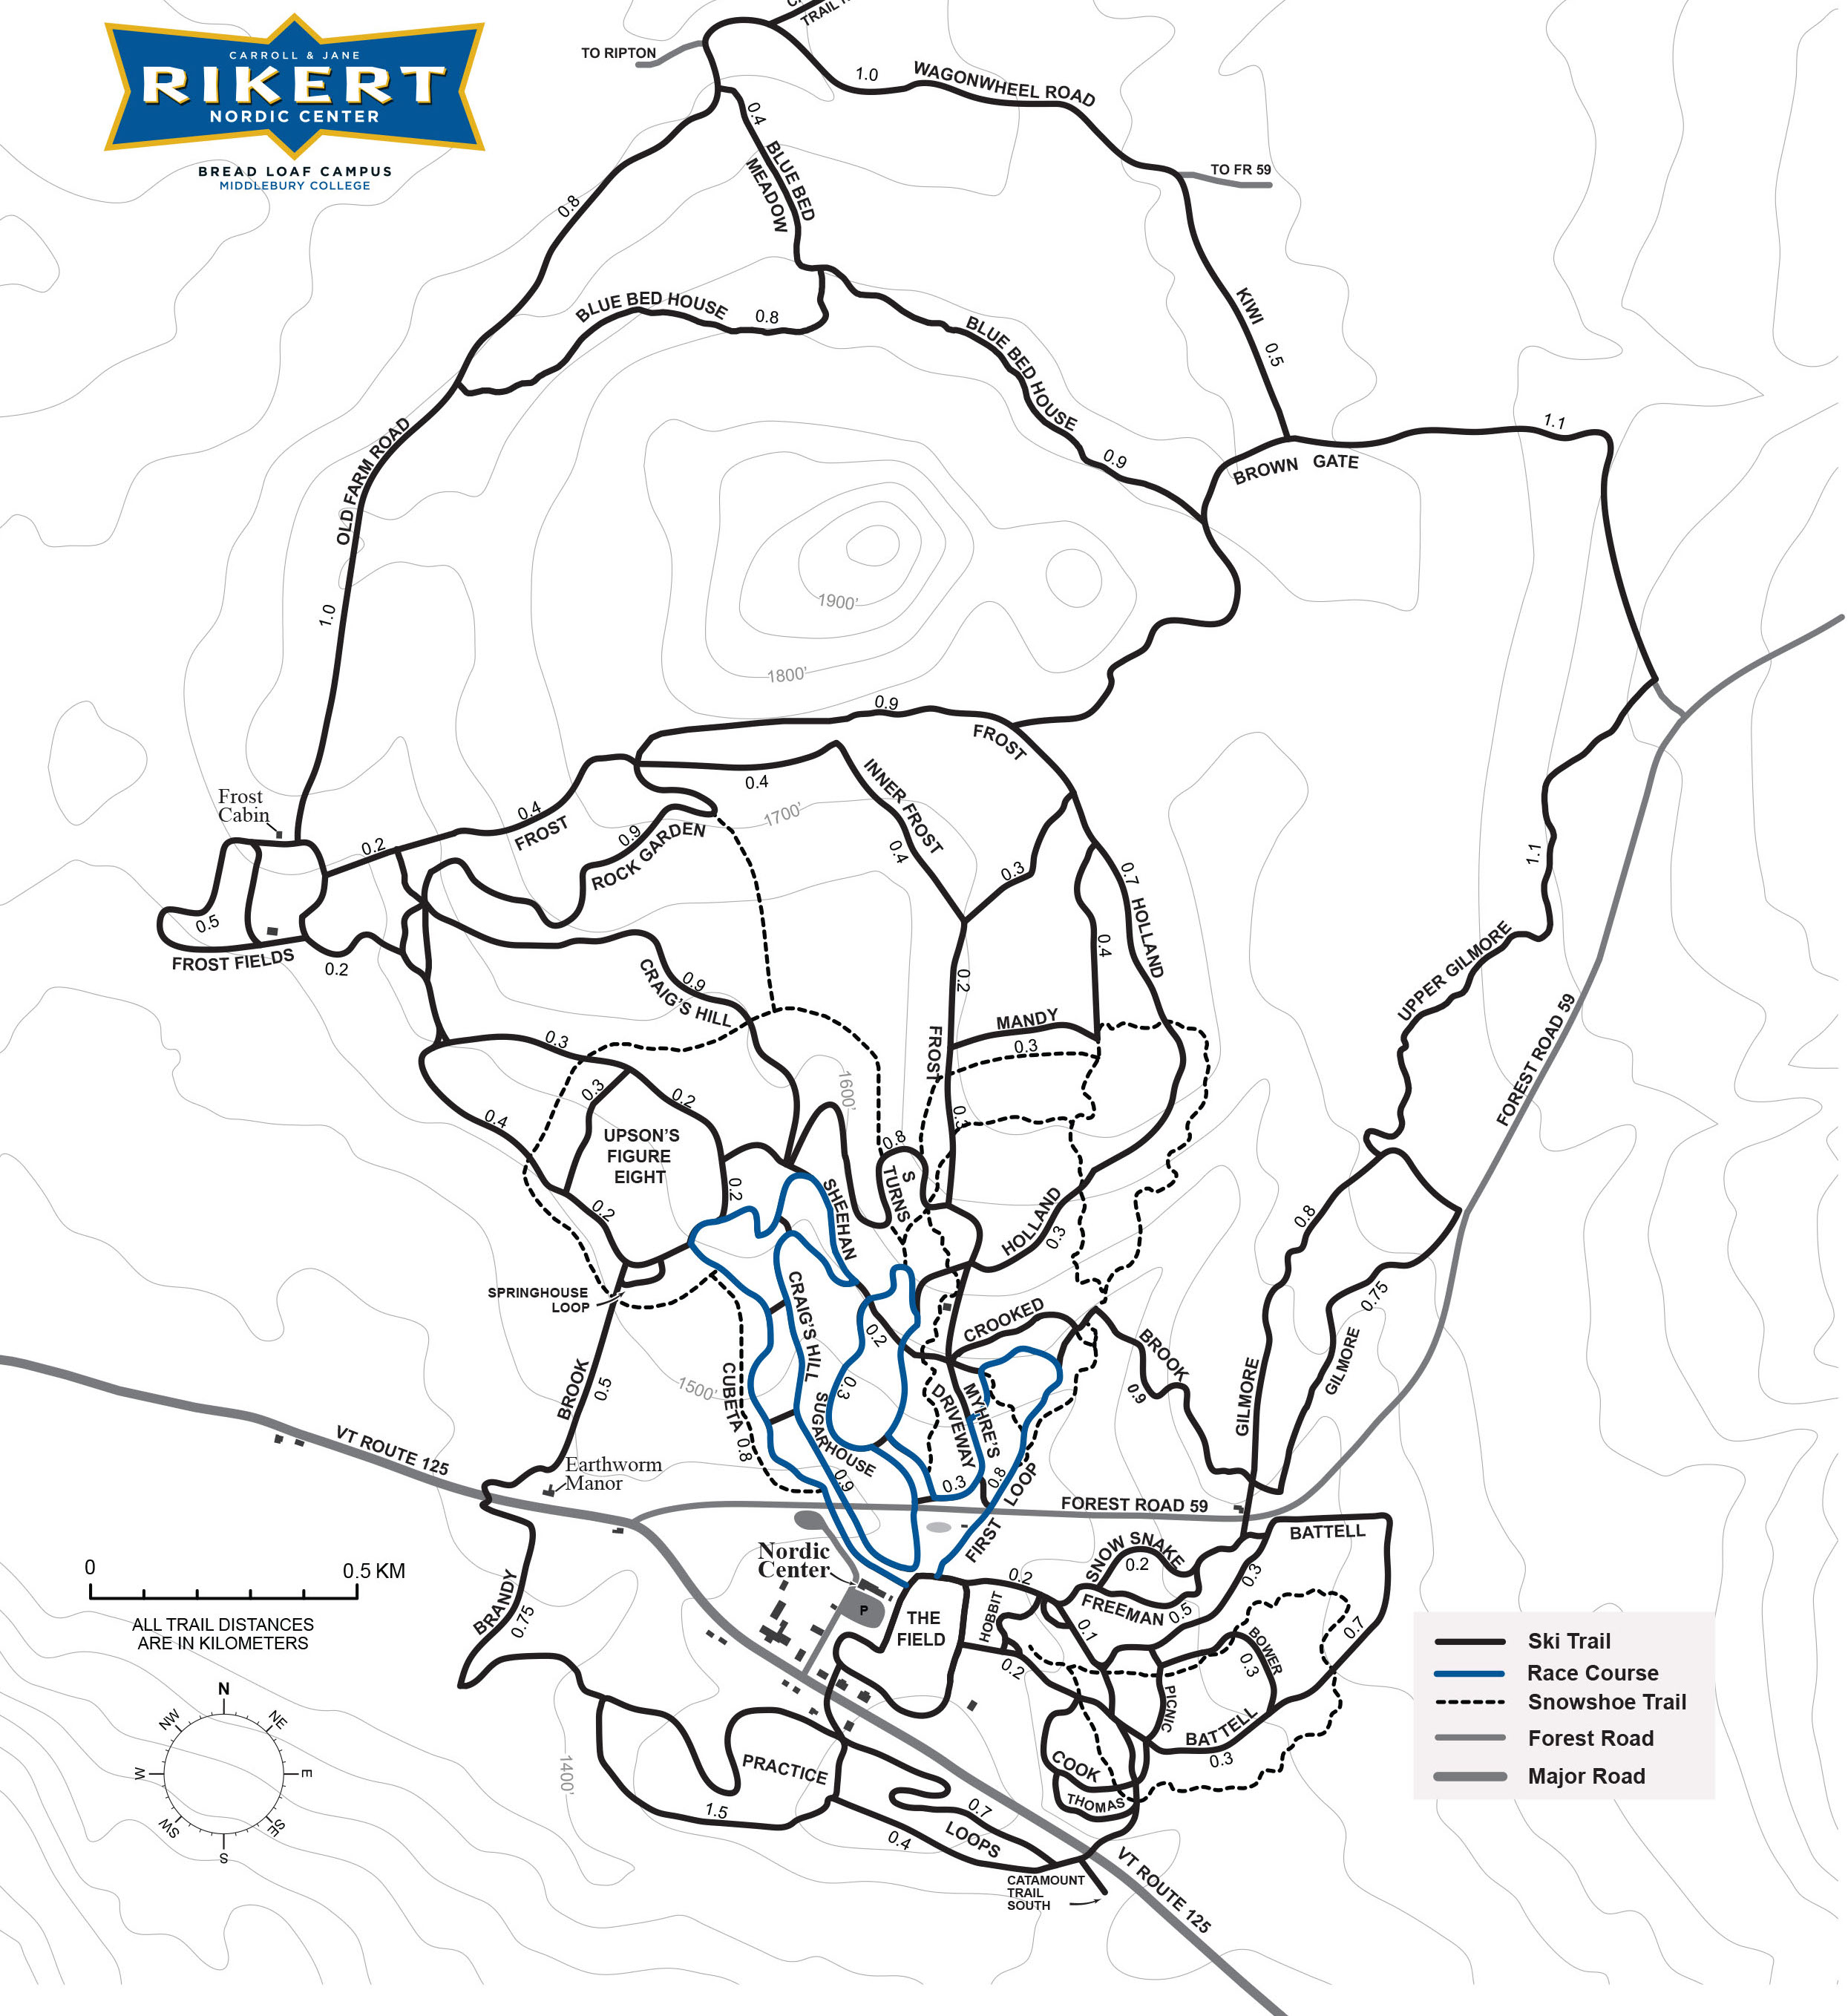 Rikert Nordic Ski Touring Center Trail Map